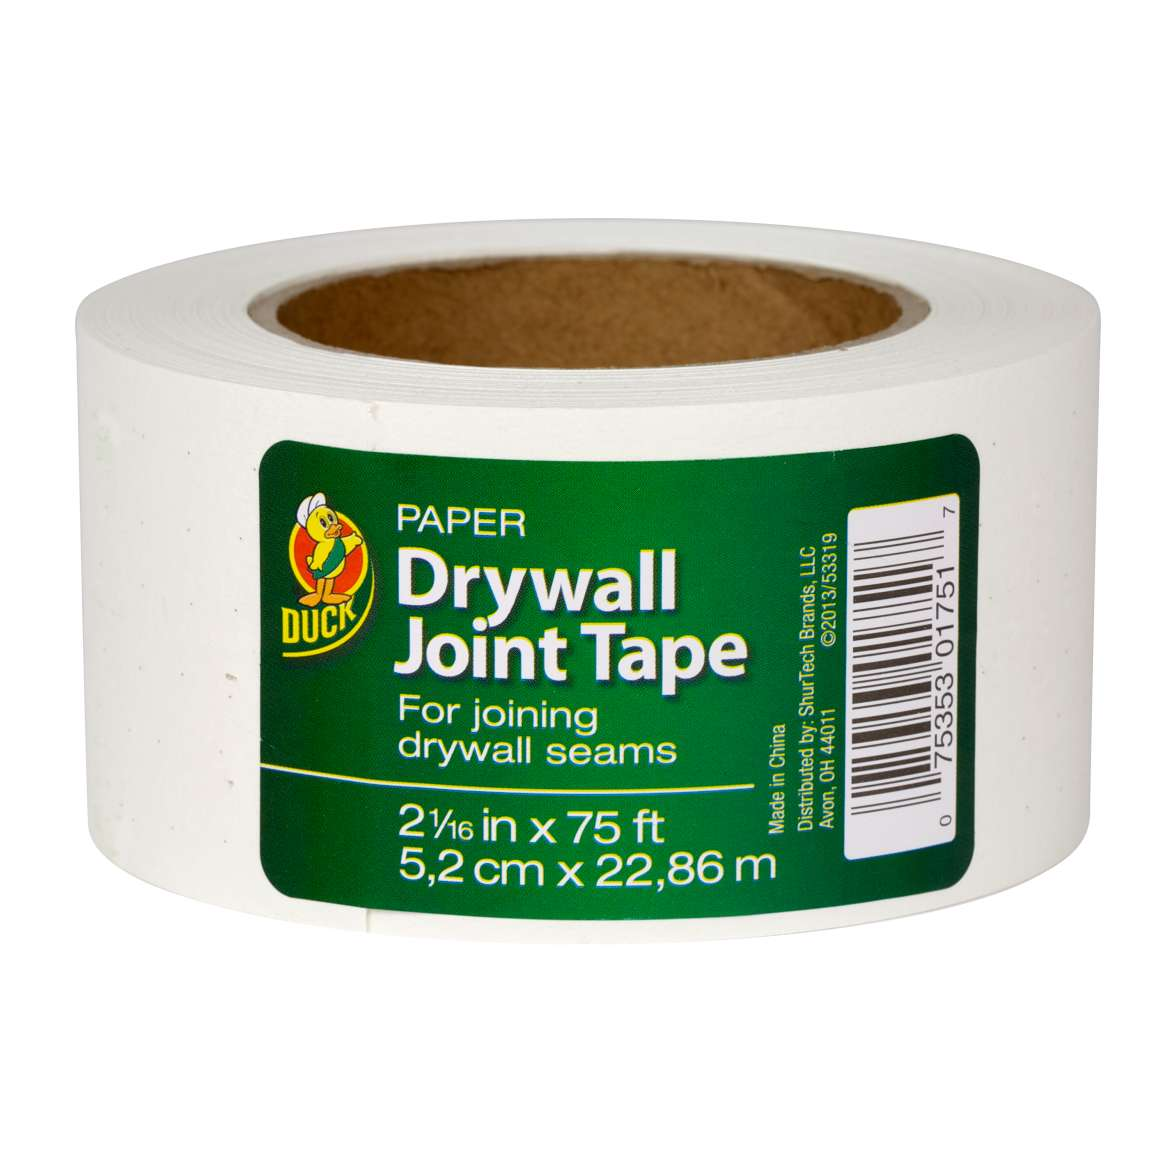 Duck® Paper Drywall Joint Tape  Image